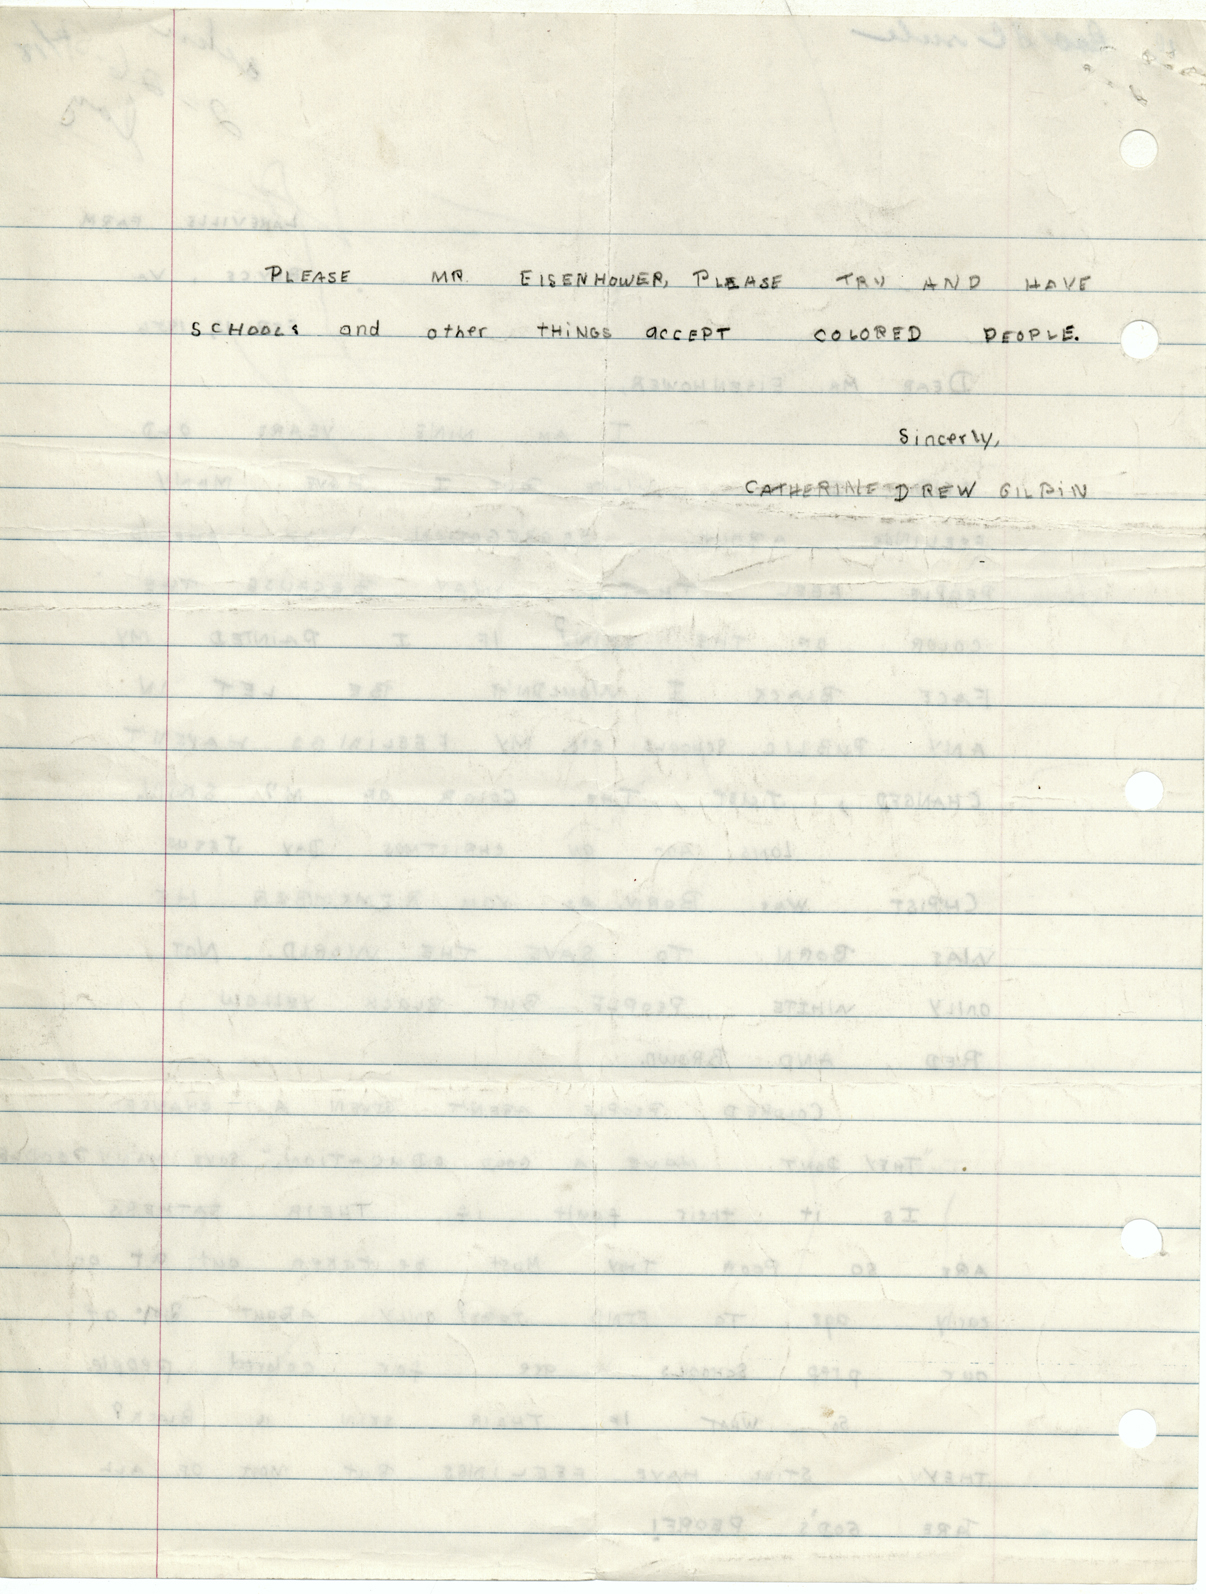 Drew Gilpin's letter (page 2) to President Eisenhower, 9 February 1957 (misdated 1956), Dwight D. Eisenhower Presidential Library.